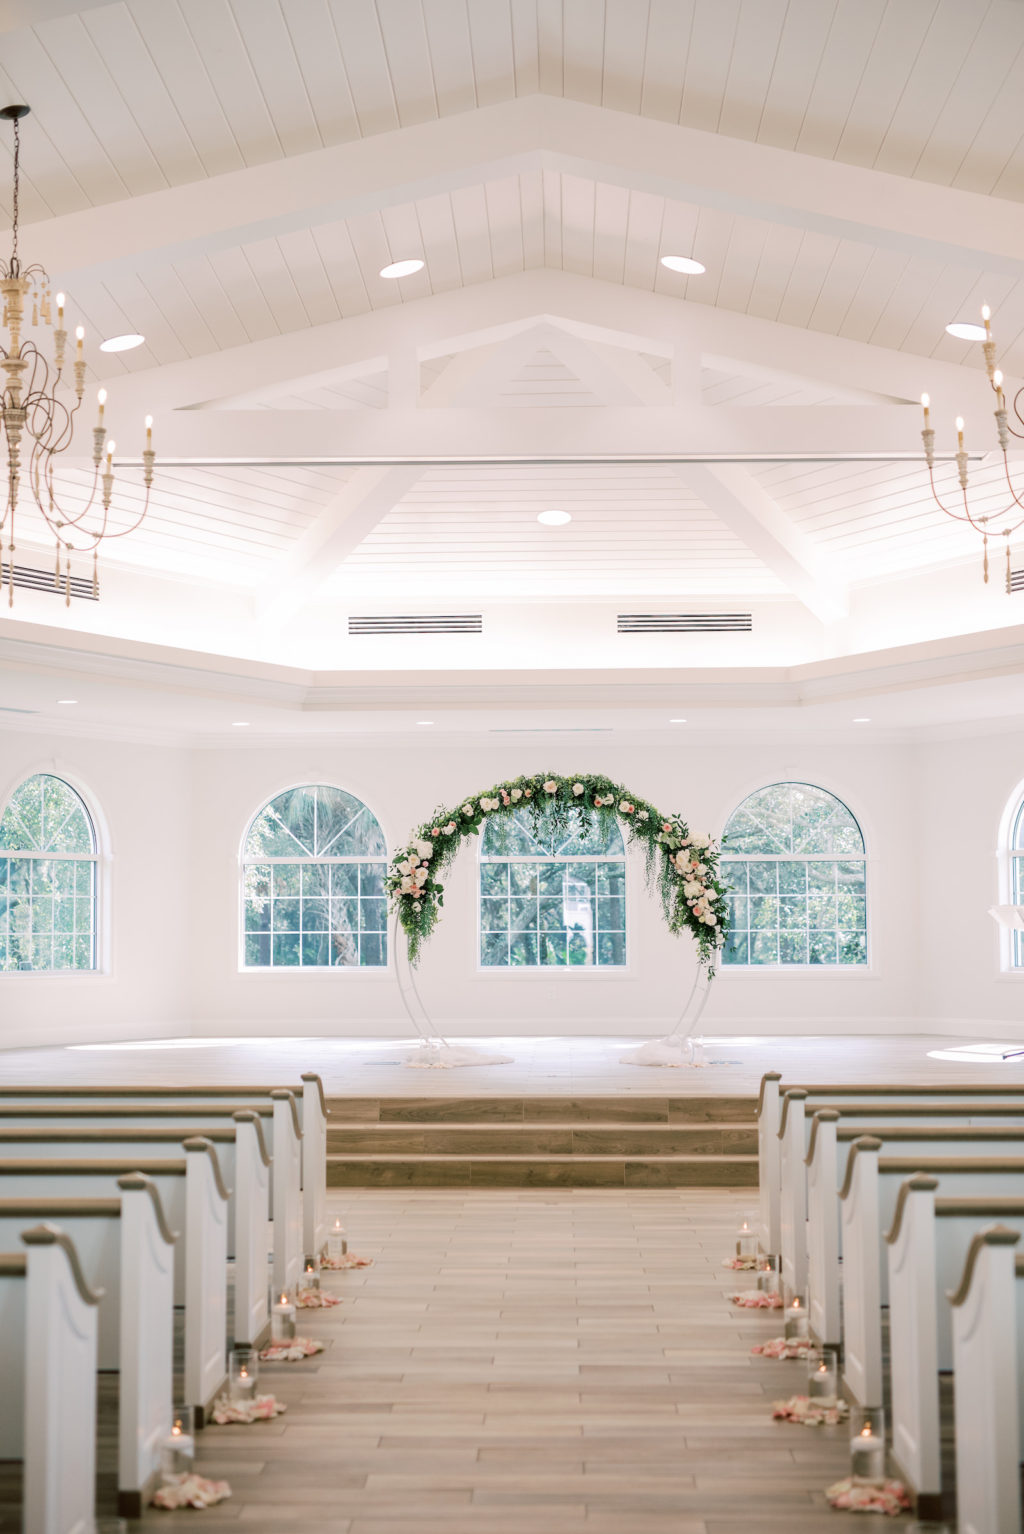 Timeless Romantic Wedding Ceremony Decor, Round Arch with Greenery and Ivory, Blush Florals | Safety Harbor Wedding Traditional Ceremony Venue Harborside Chapel | Wedding Planner Special Moments Event Planning